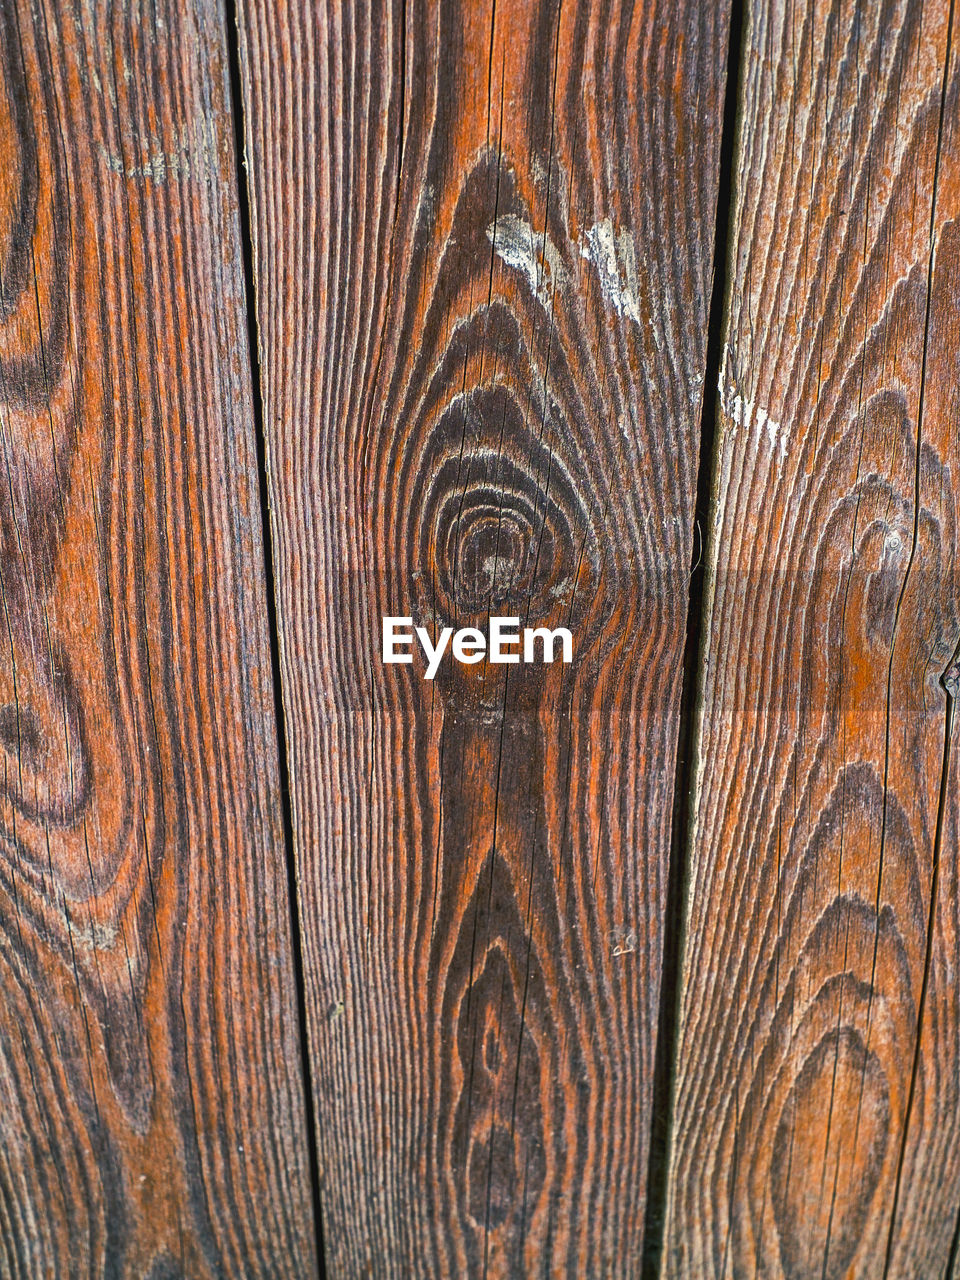 wood - material, backgrounds, wood grain, pattern, textured, timber, nature, brown, hardwood, cross section, pine tree, full frame, close-up, tree ring, no people, tree, knotted wood, oak tree, time, day